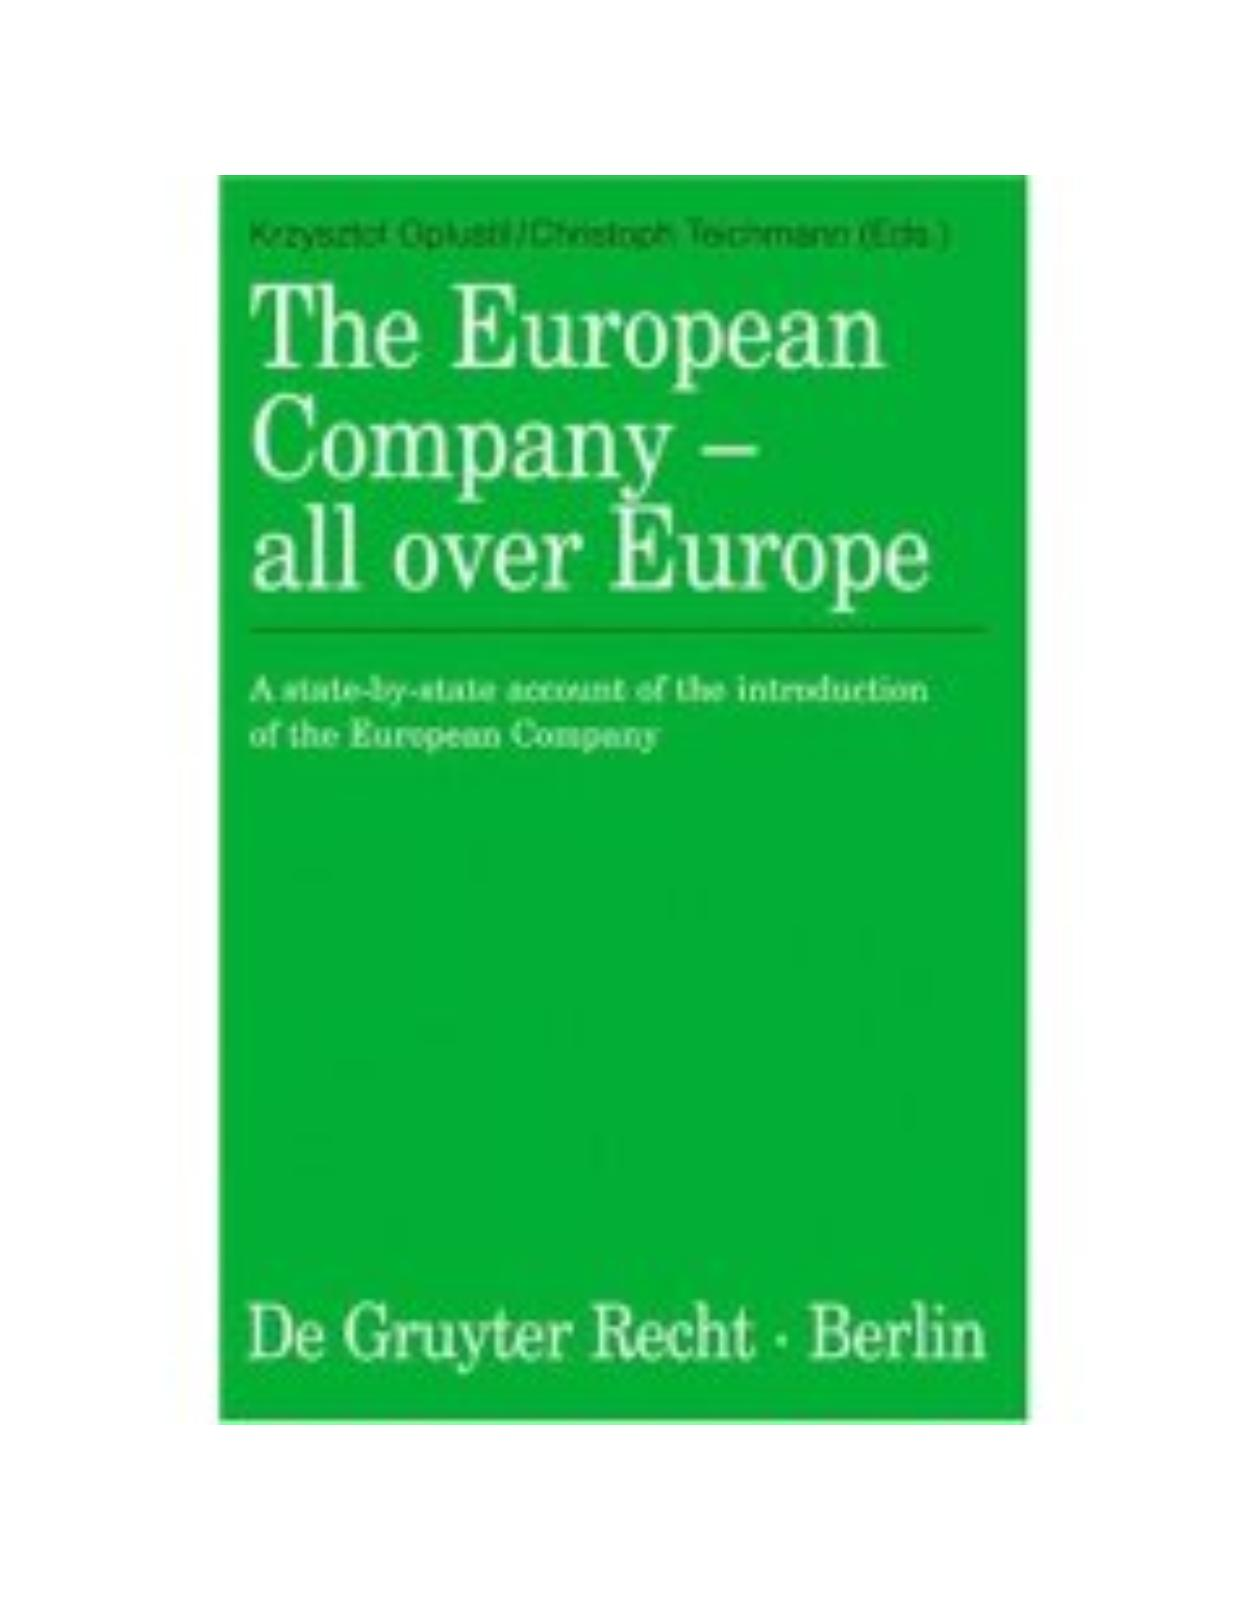 The European Company – all over Europe